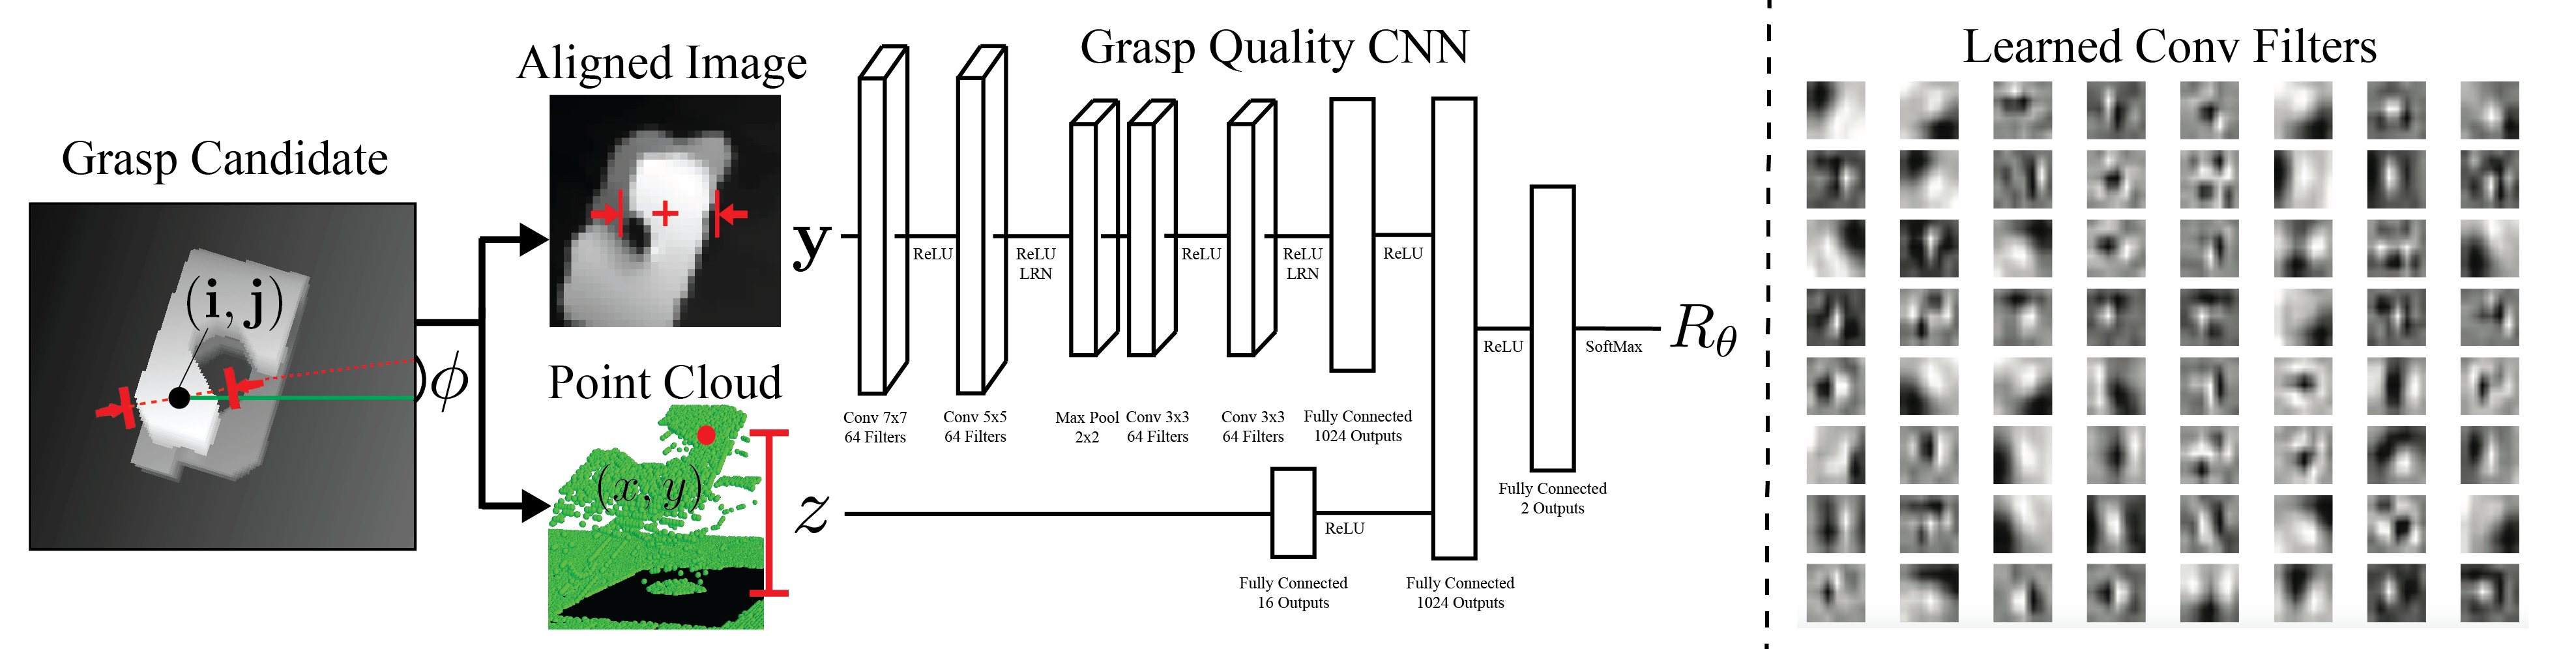 (Left) Architecture of the Grasp Quality Convolutional Neural Network (GQ-CNN). Grasp candidates are generated from a depth image and transformed to align the image with by the grasp center and axis. The height of each grasp is sampled between the height at the grasp center pixel and the table surface. The architecture contains four convolutional layers in pairs of two separated by ReLU nonlinearities followed by 3 fully connected layers and a separate input layer for the gripper height. The use of convolutional layers was inspired by results indicating the relevance of depth edges as features for learning